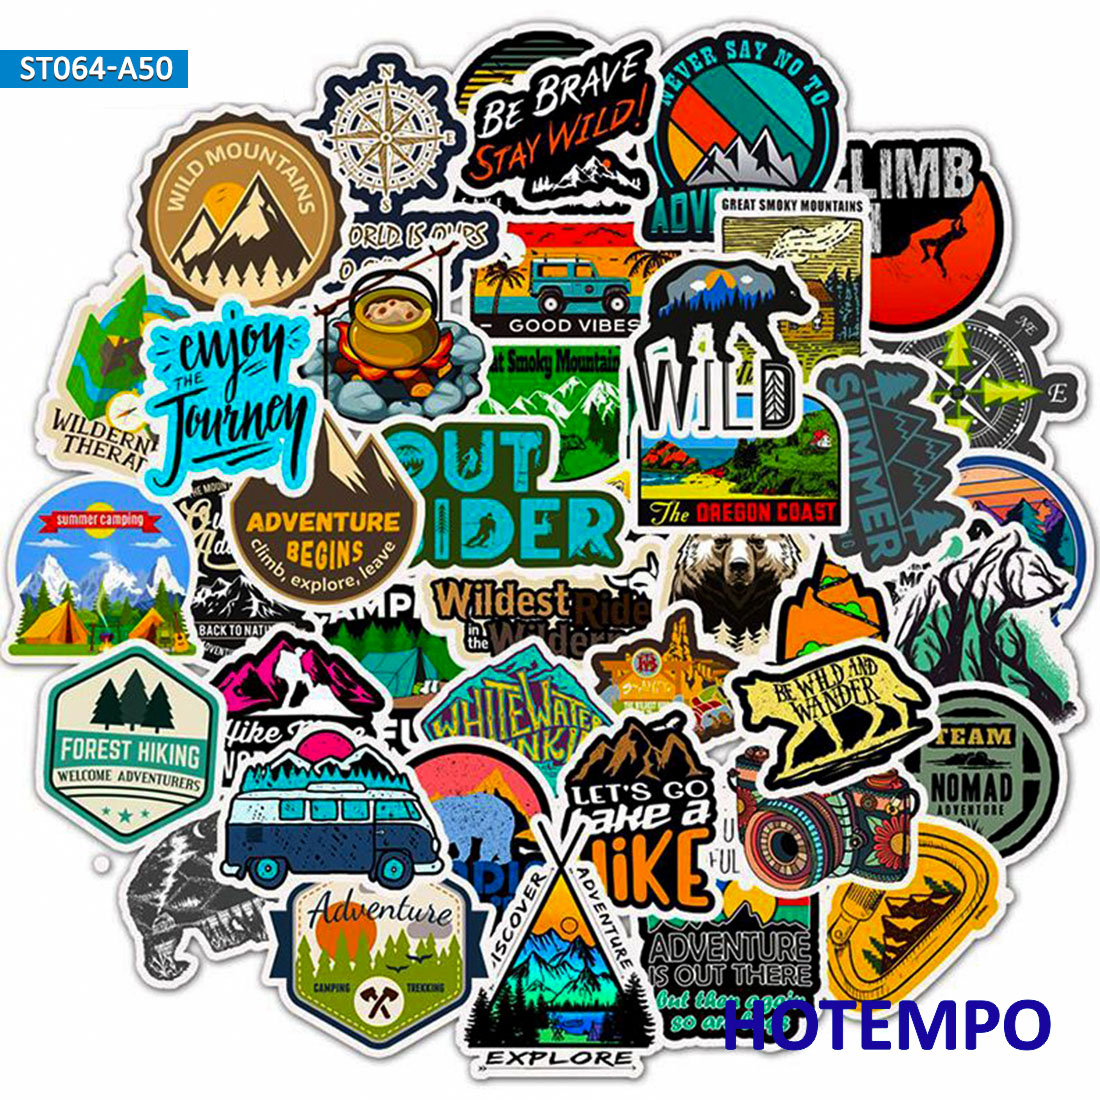 50pcs Outdoor Wild Camping Adventure Climbing Travel Landscape Stickers For Mobile Phone Laptop Luggage Guitar Case Art Stickers